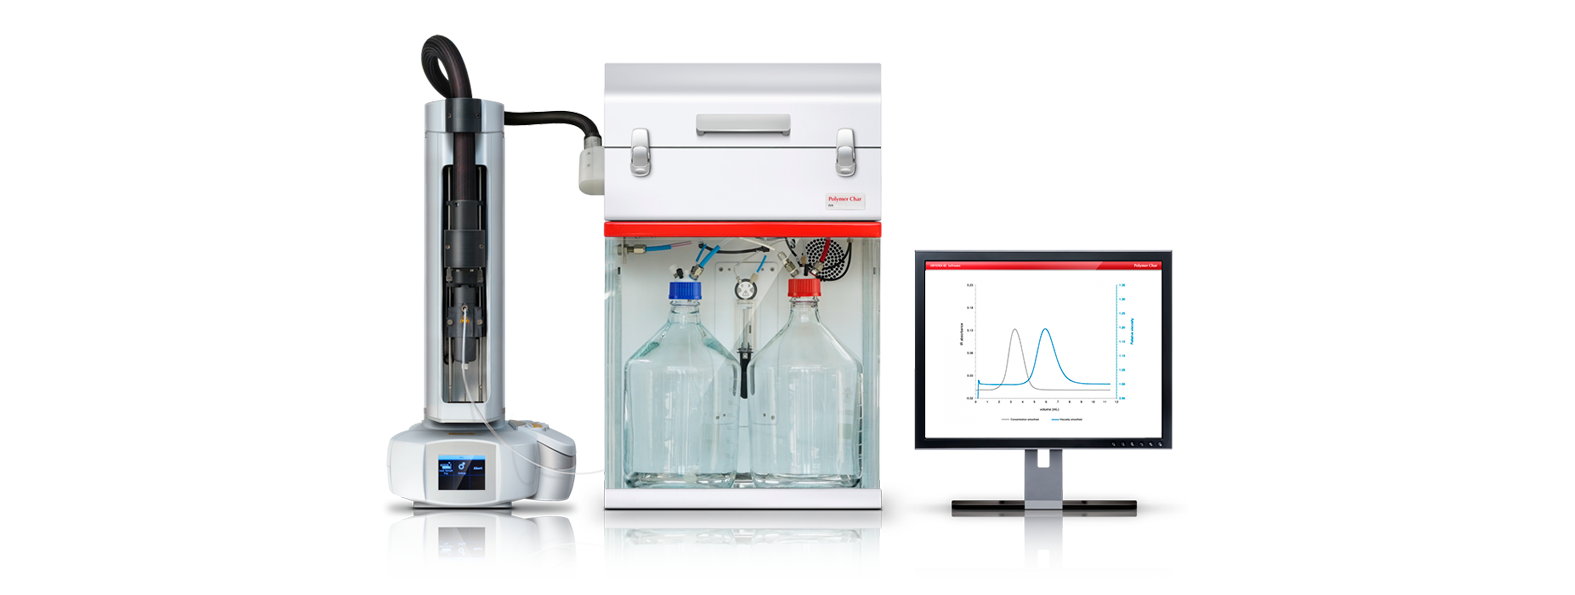 Intrinsic Viscosity Analyzer (IVA)